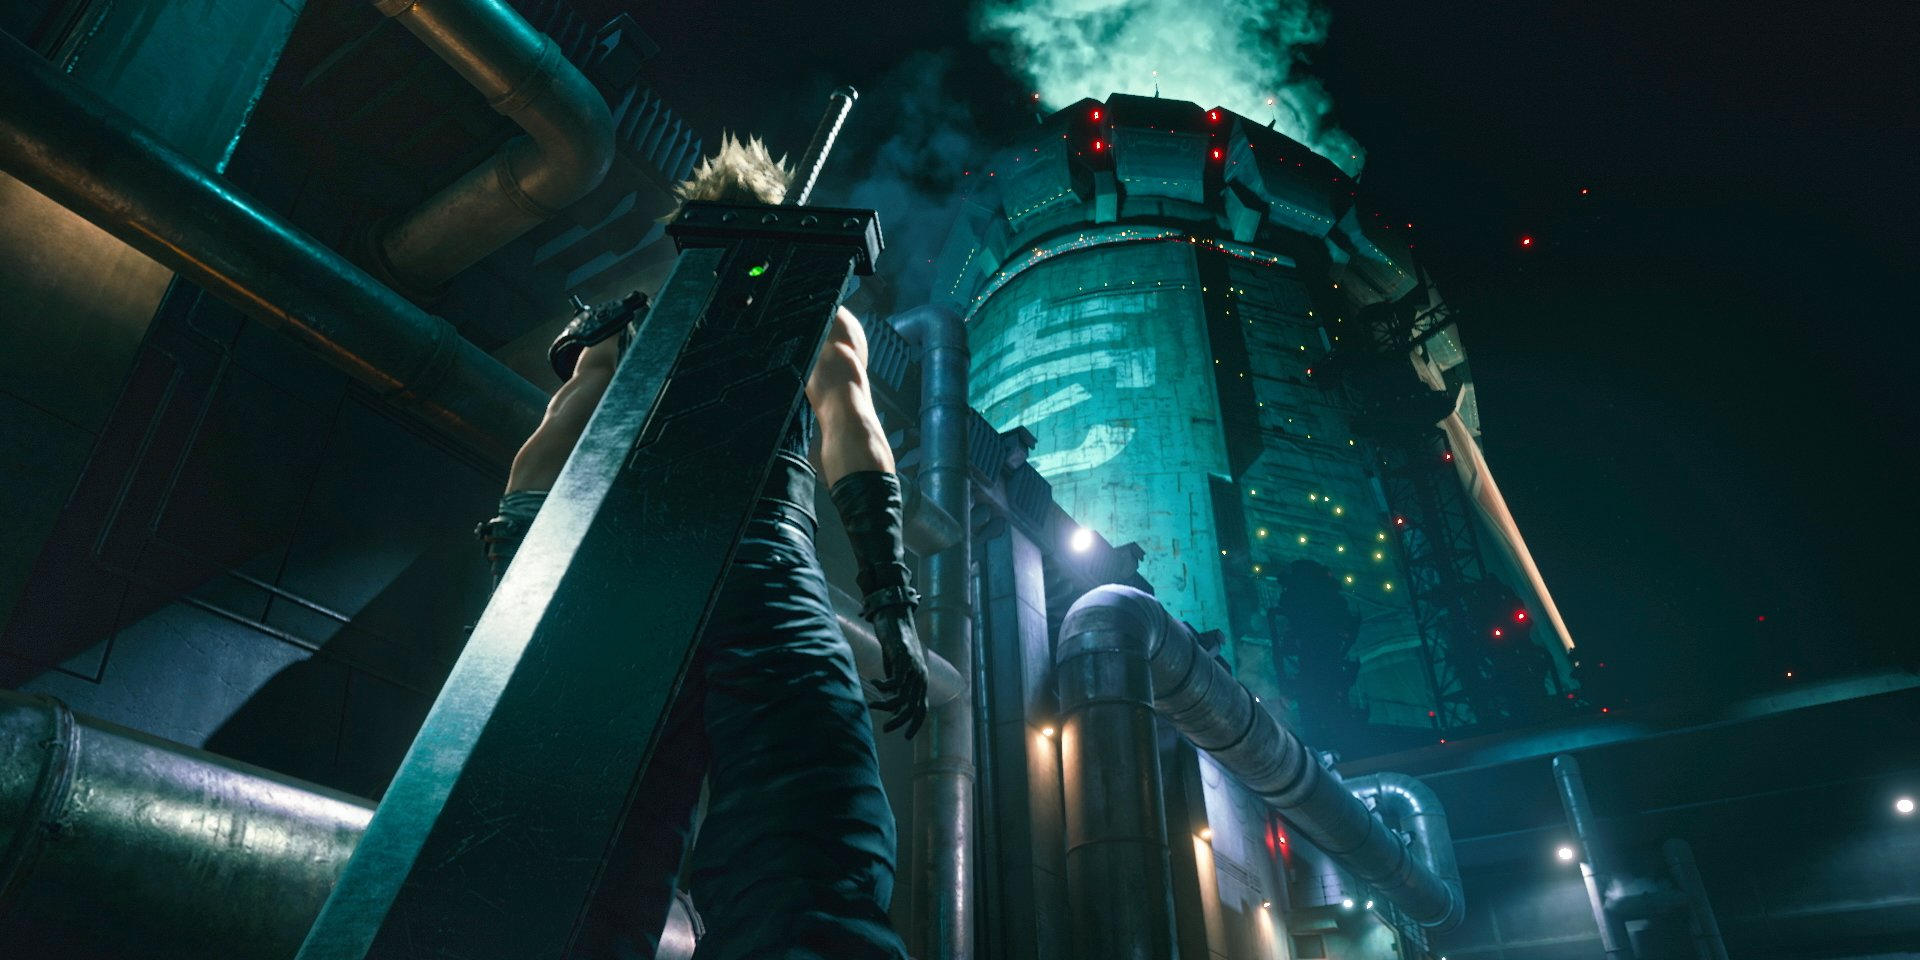 Everything we know about 'Final Fantasy VII Remake,' the gorgeous new game that's been rebuilt from the ground up